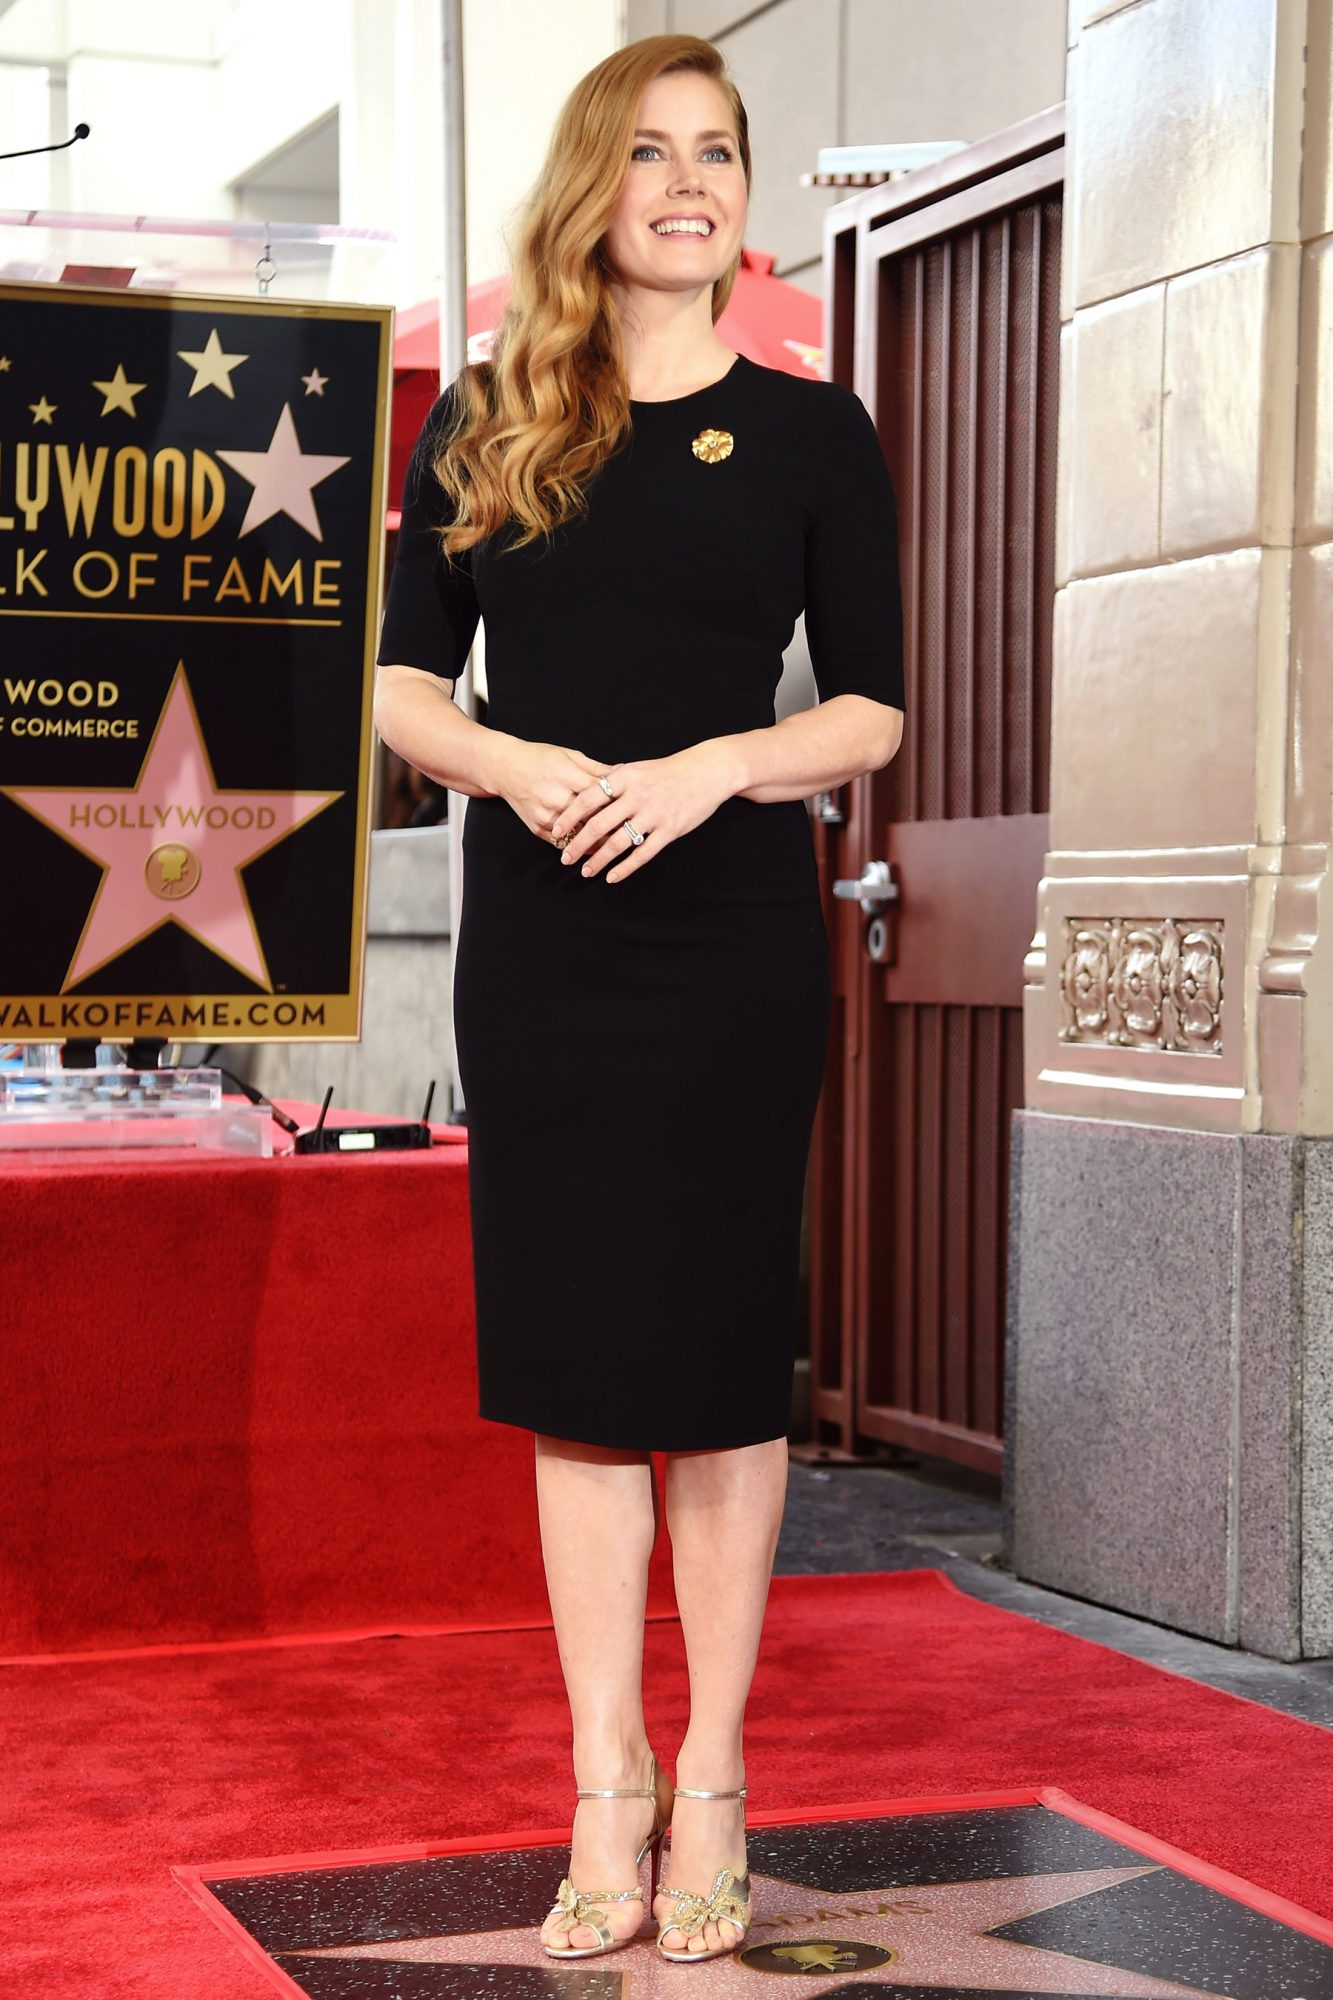 US-ENTERTAINMENT-HWOF-AMY ADAMS